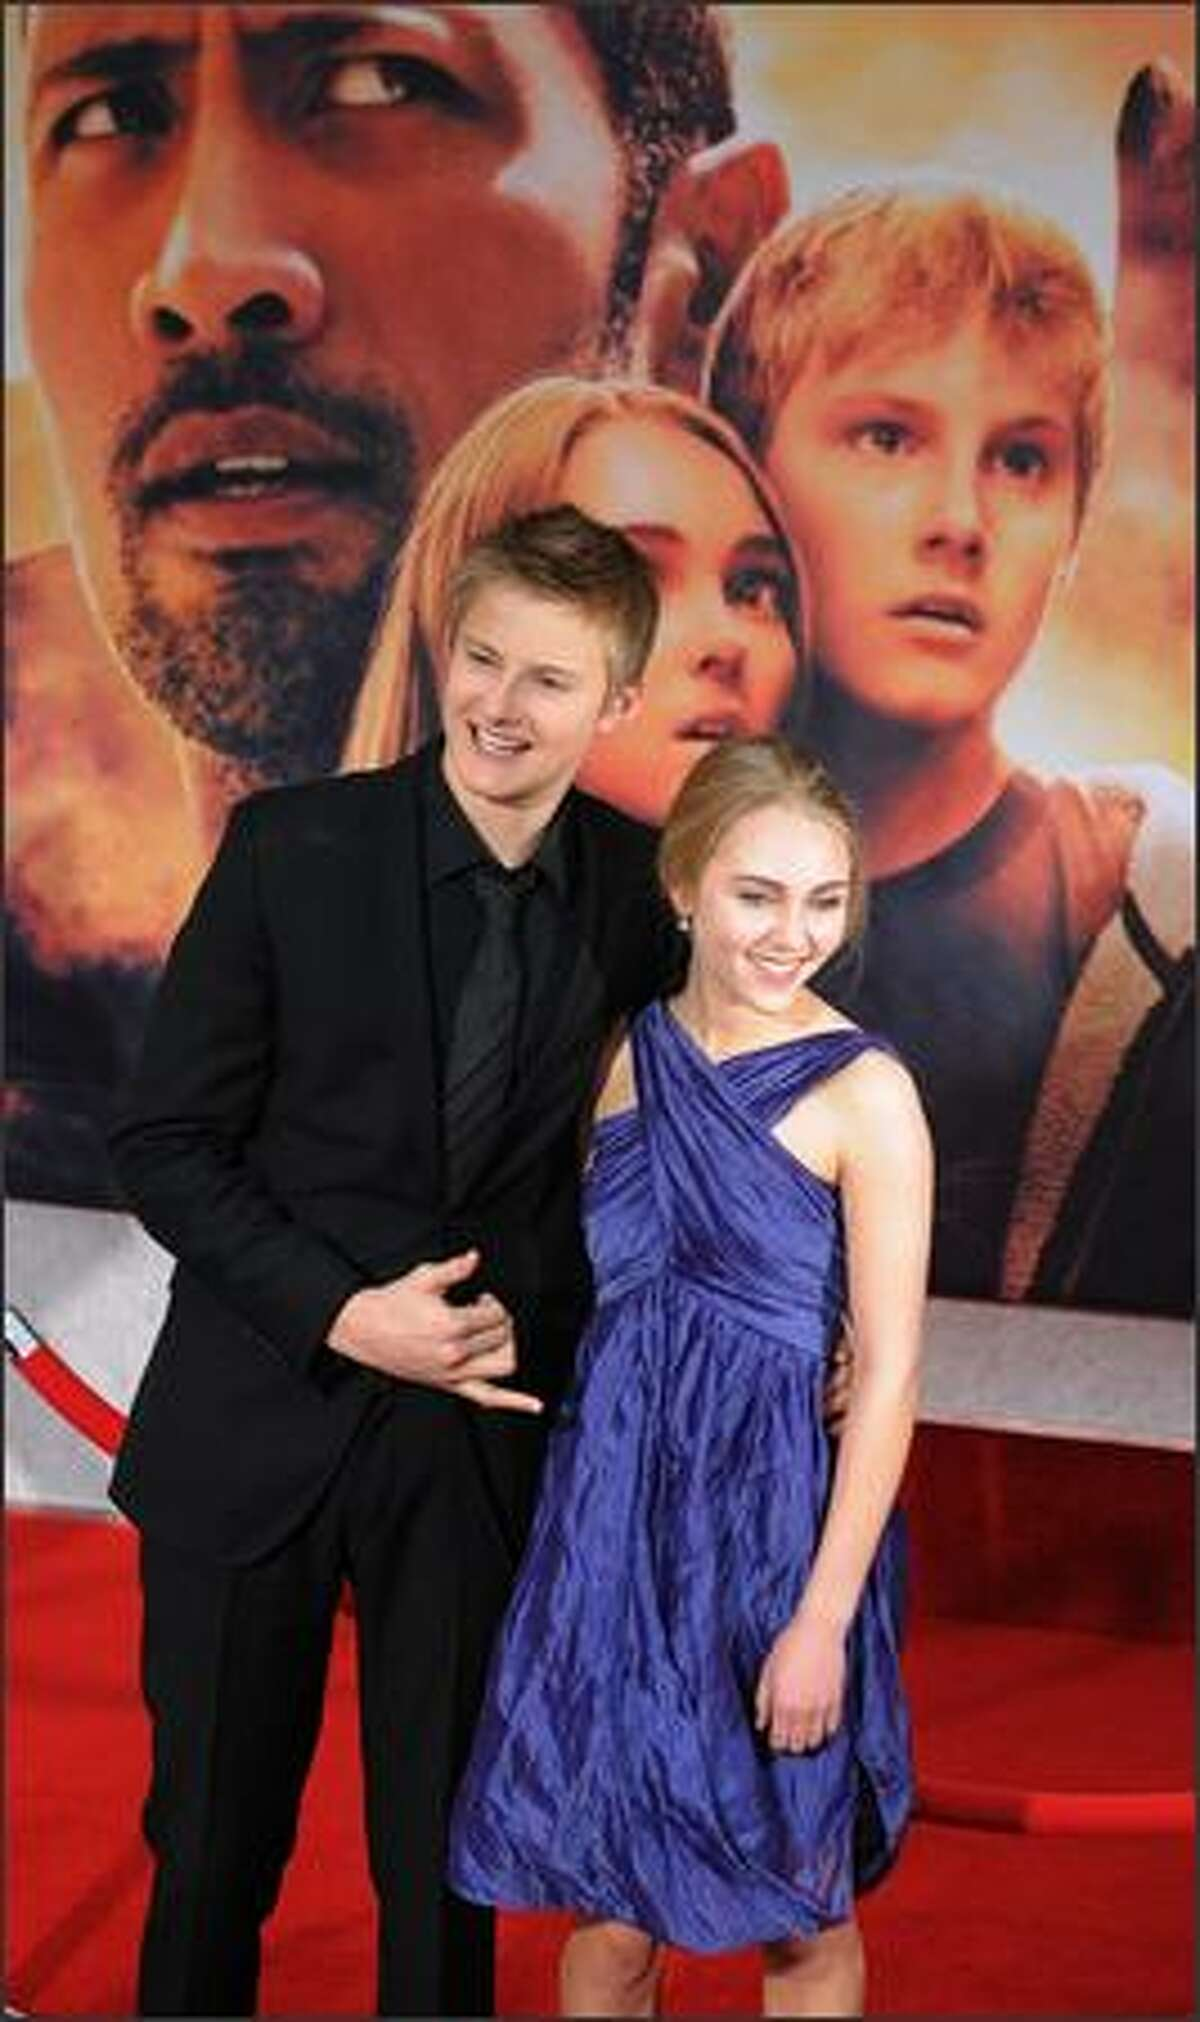 Actor Alexander Ludwig and co-star AnnaSophia Robb pose for photos as they arrive for the world premiere of the Disney film